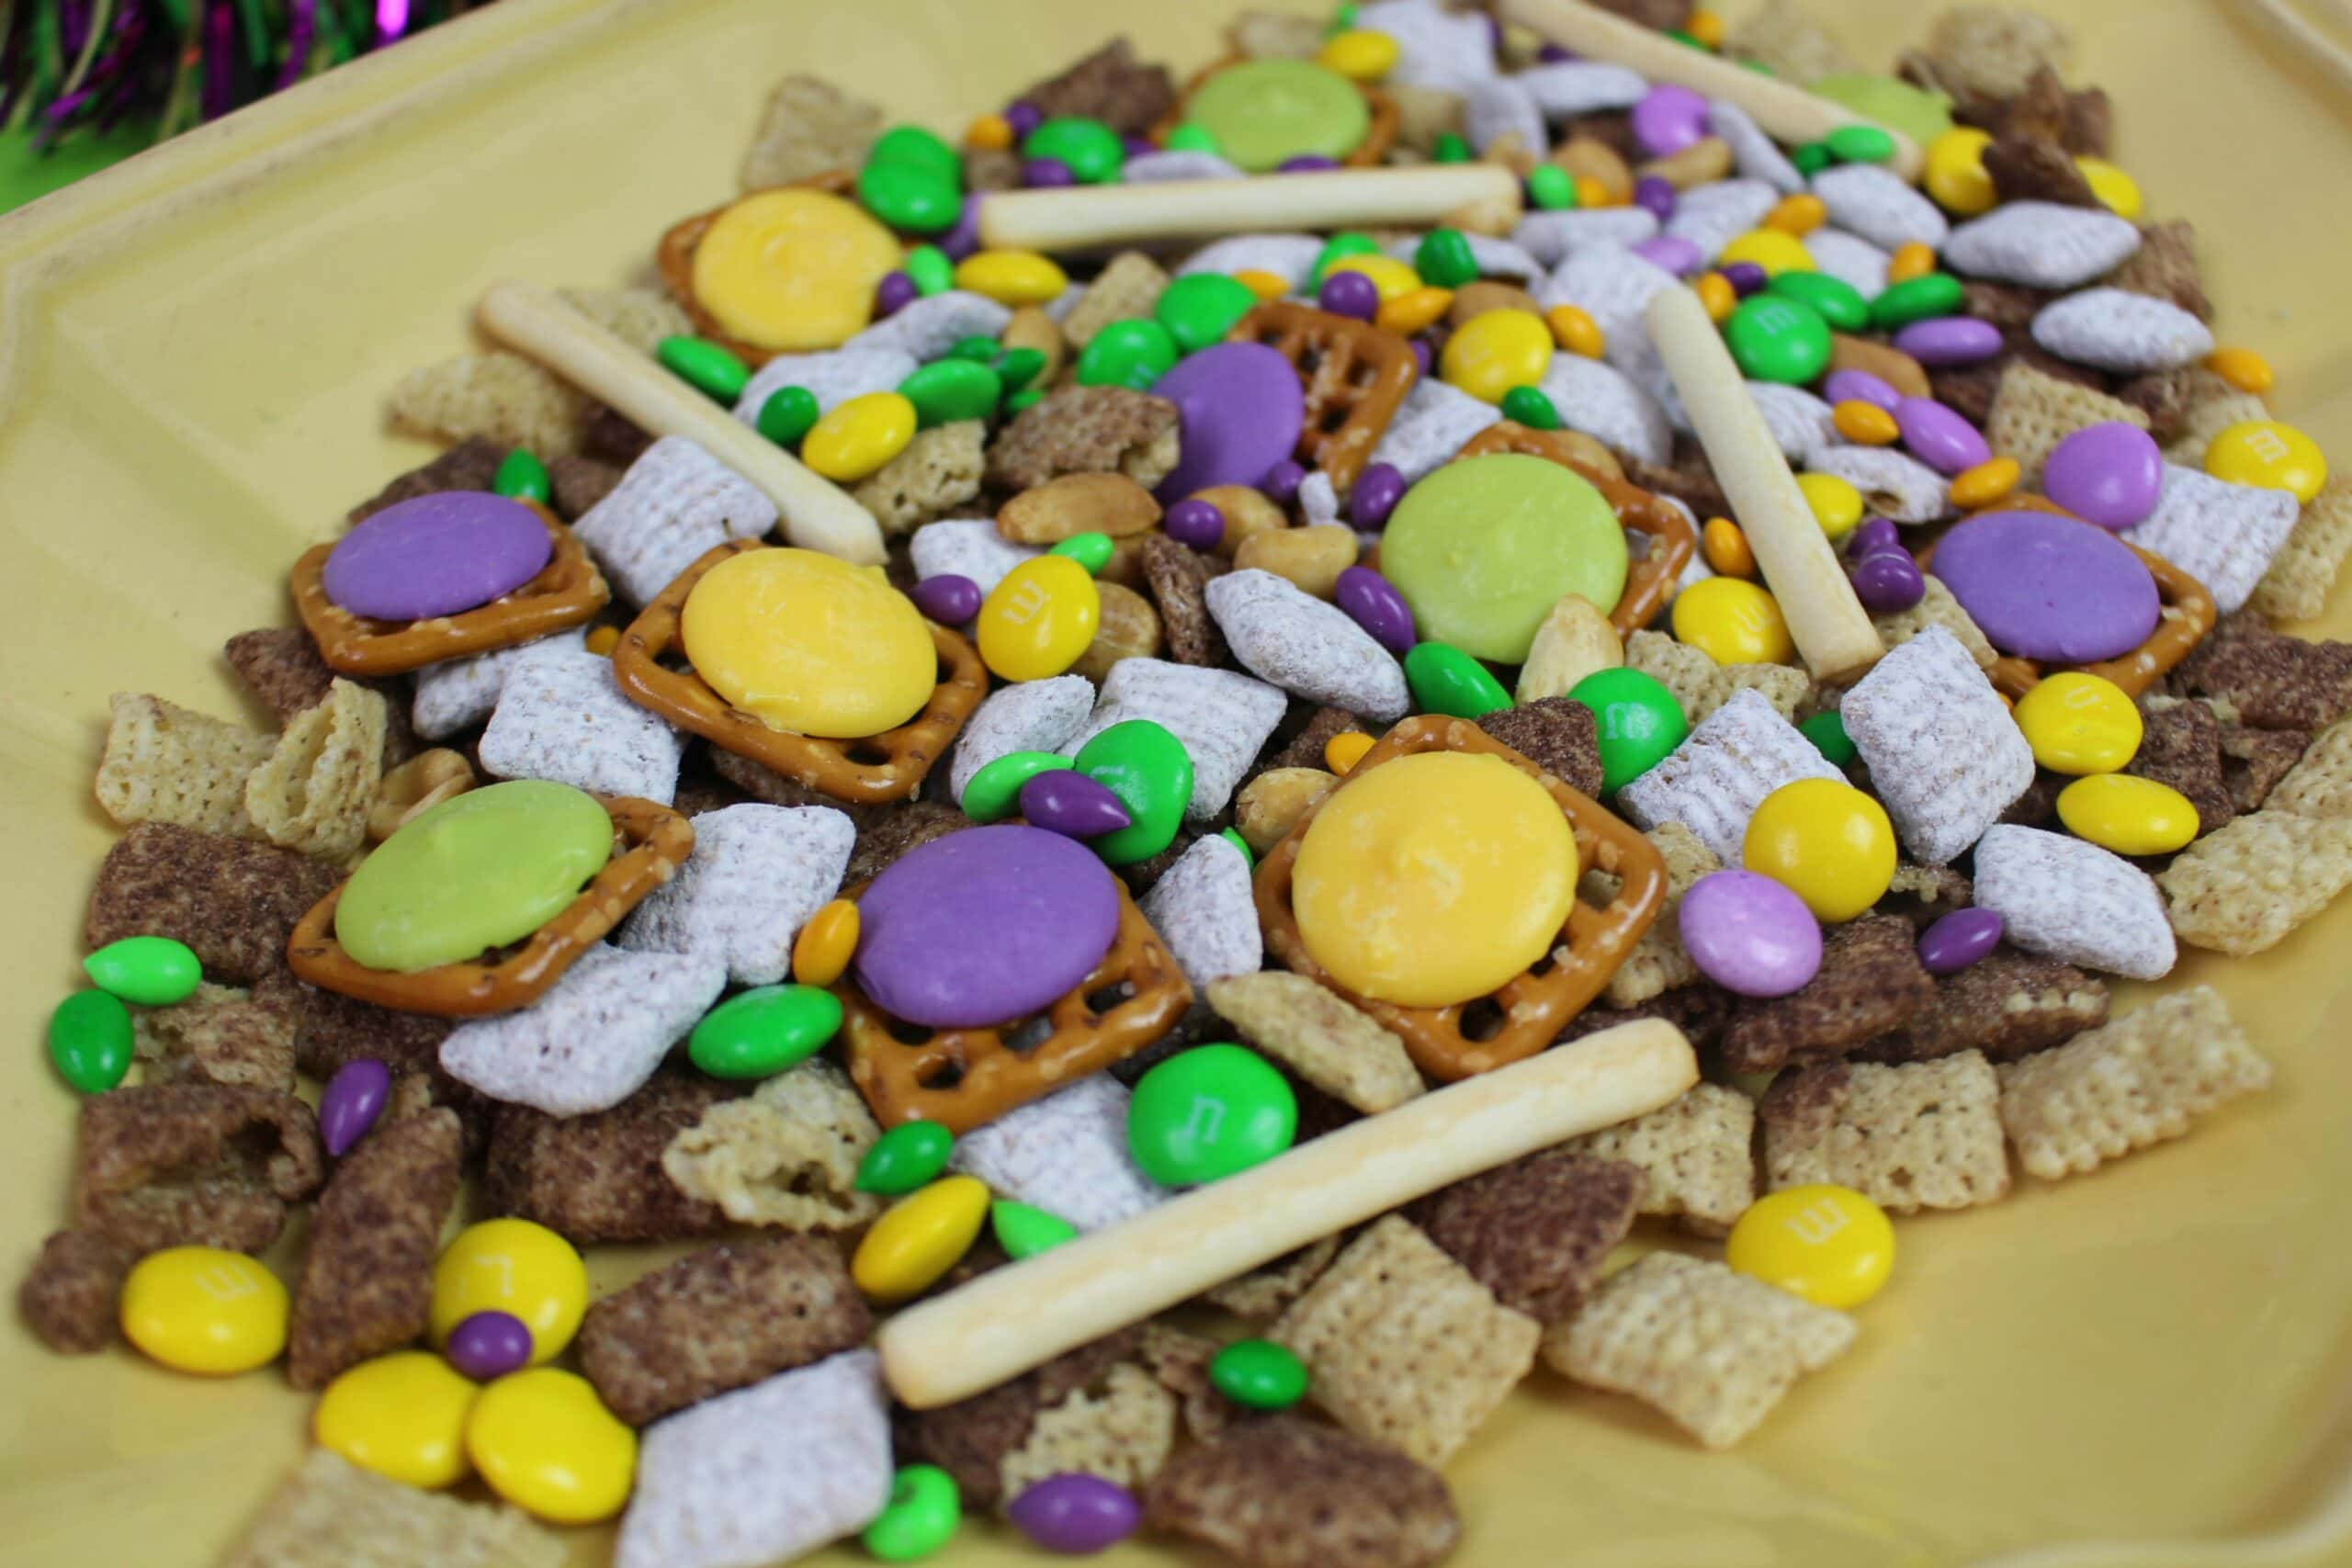 purple, green and yellow pretzel, chocolate and Chex cereal snack mix on yellow plate